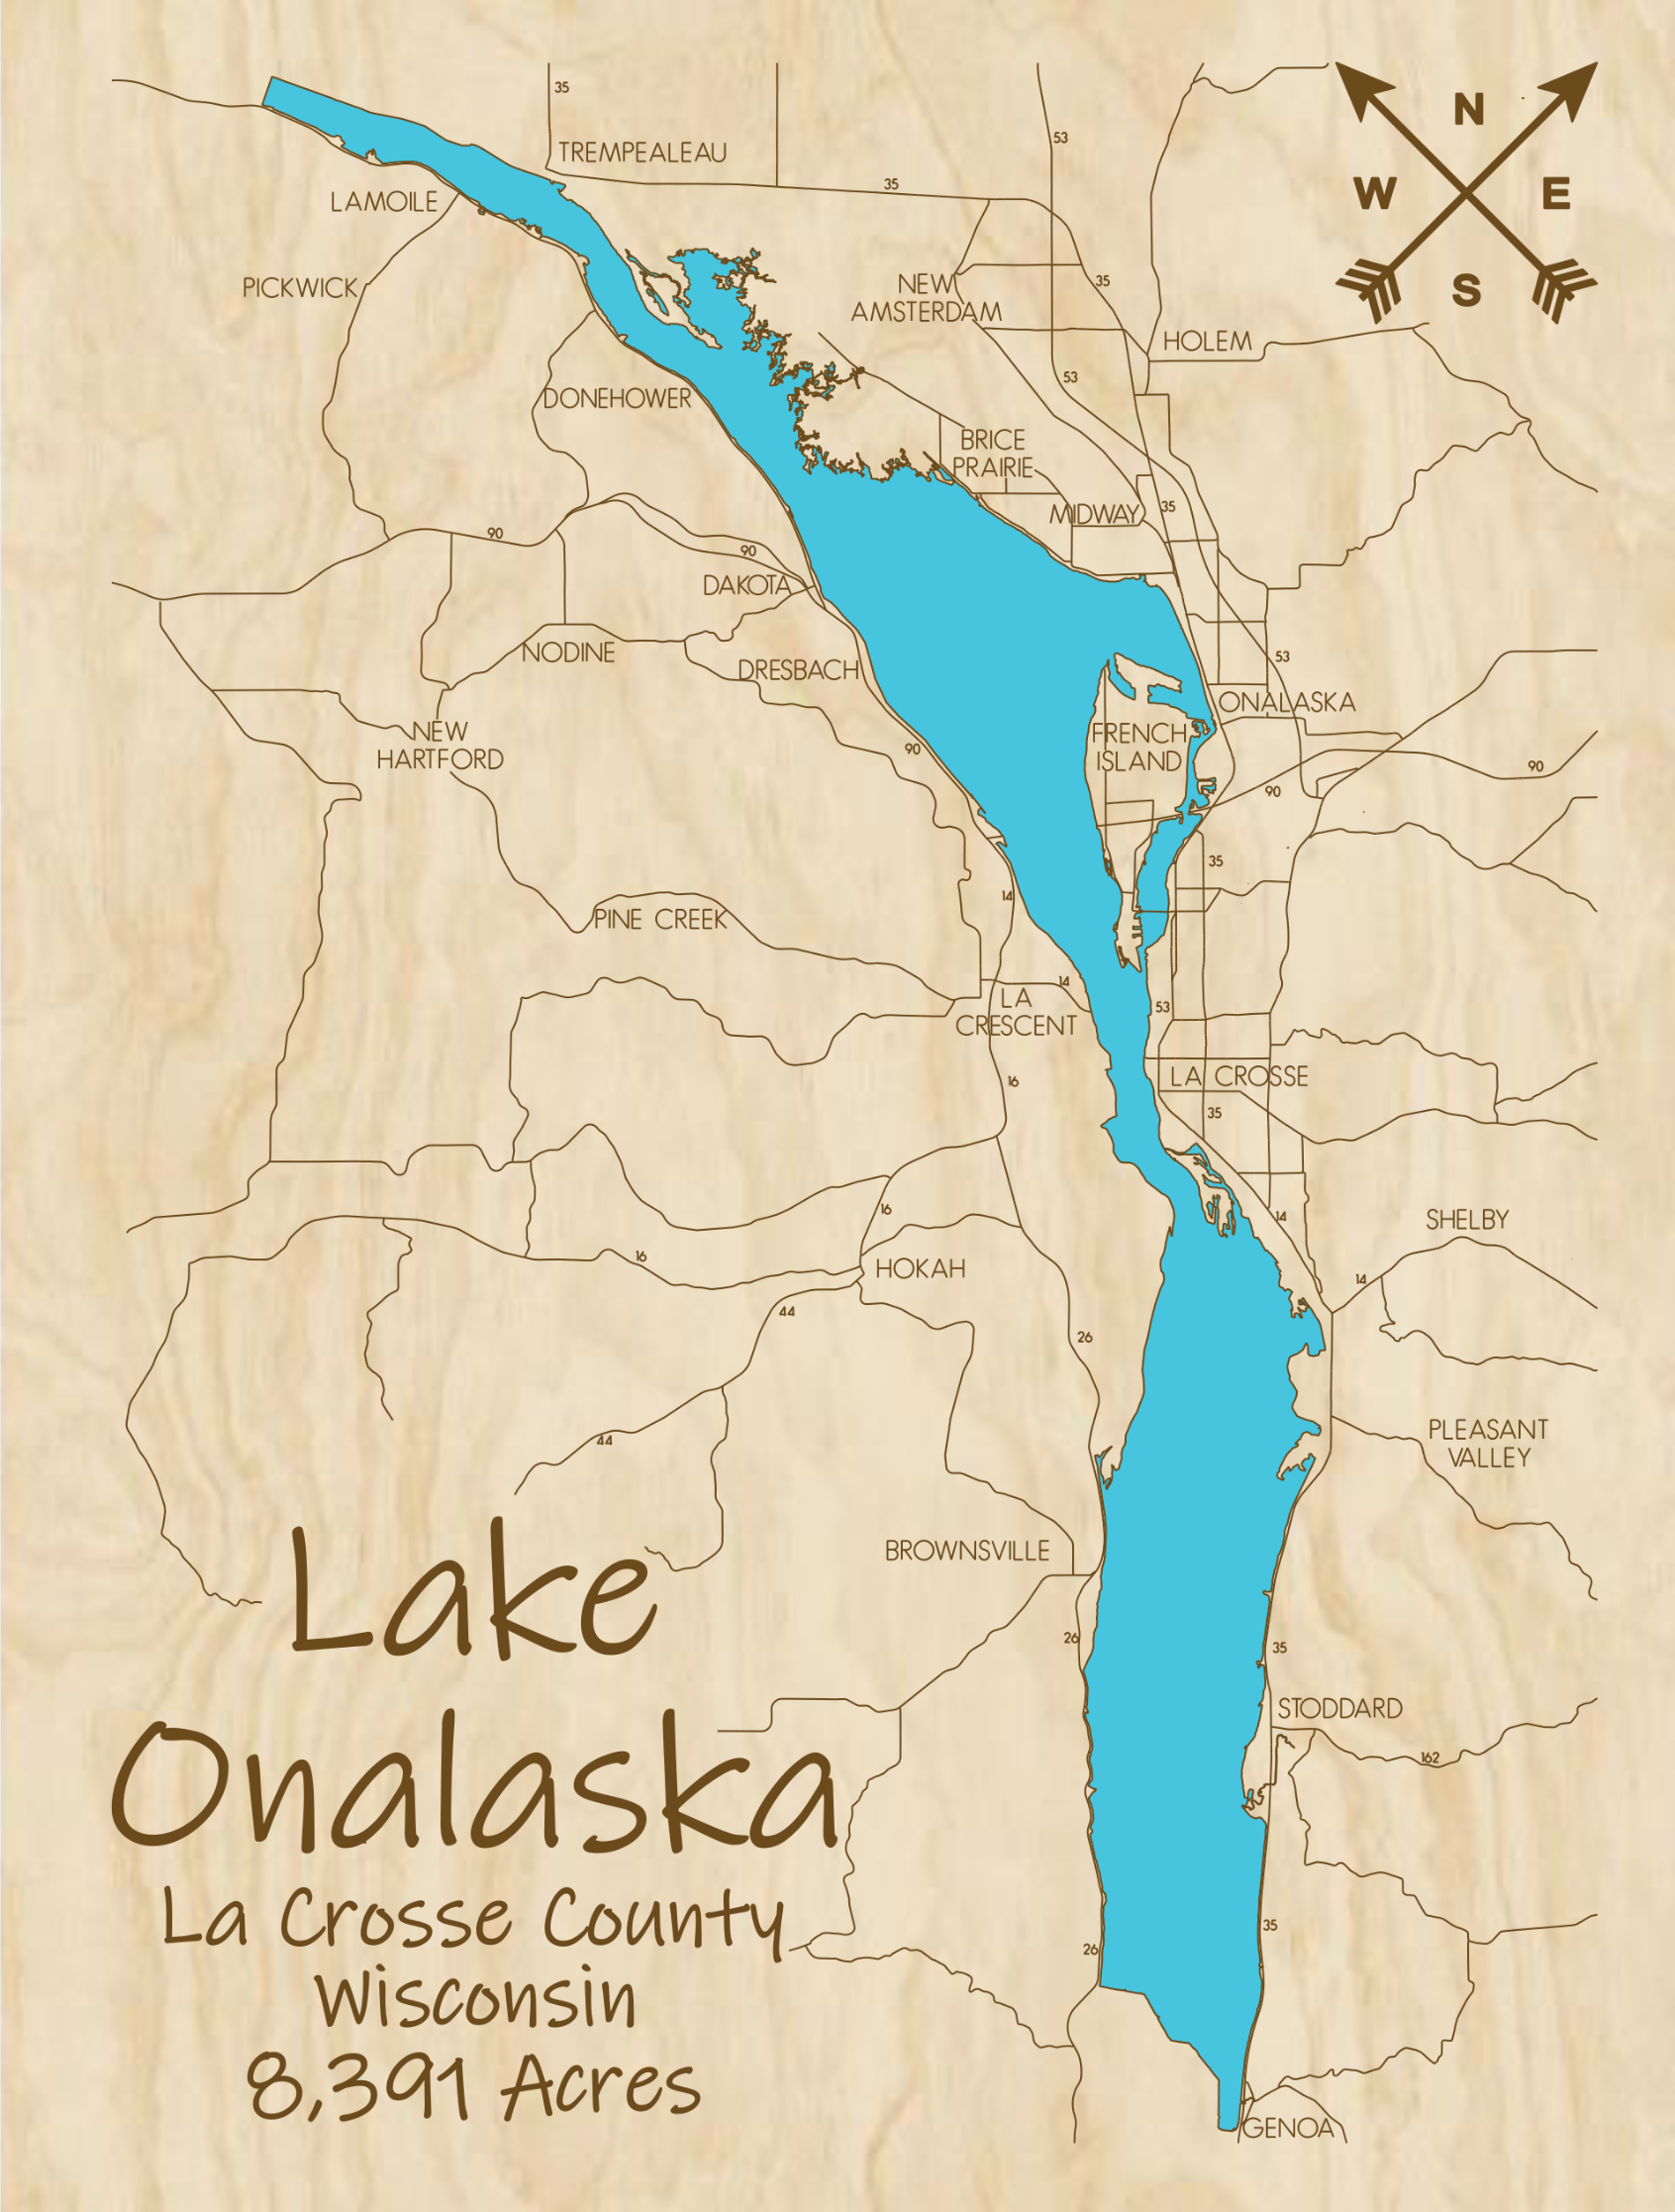 Lake Onalaska Multi-Layered Wood Lake Map